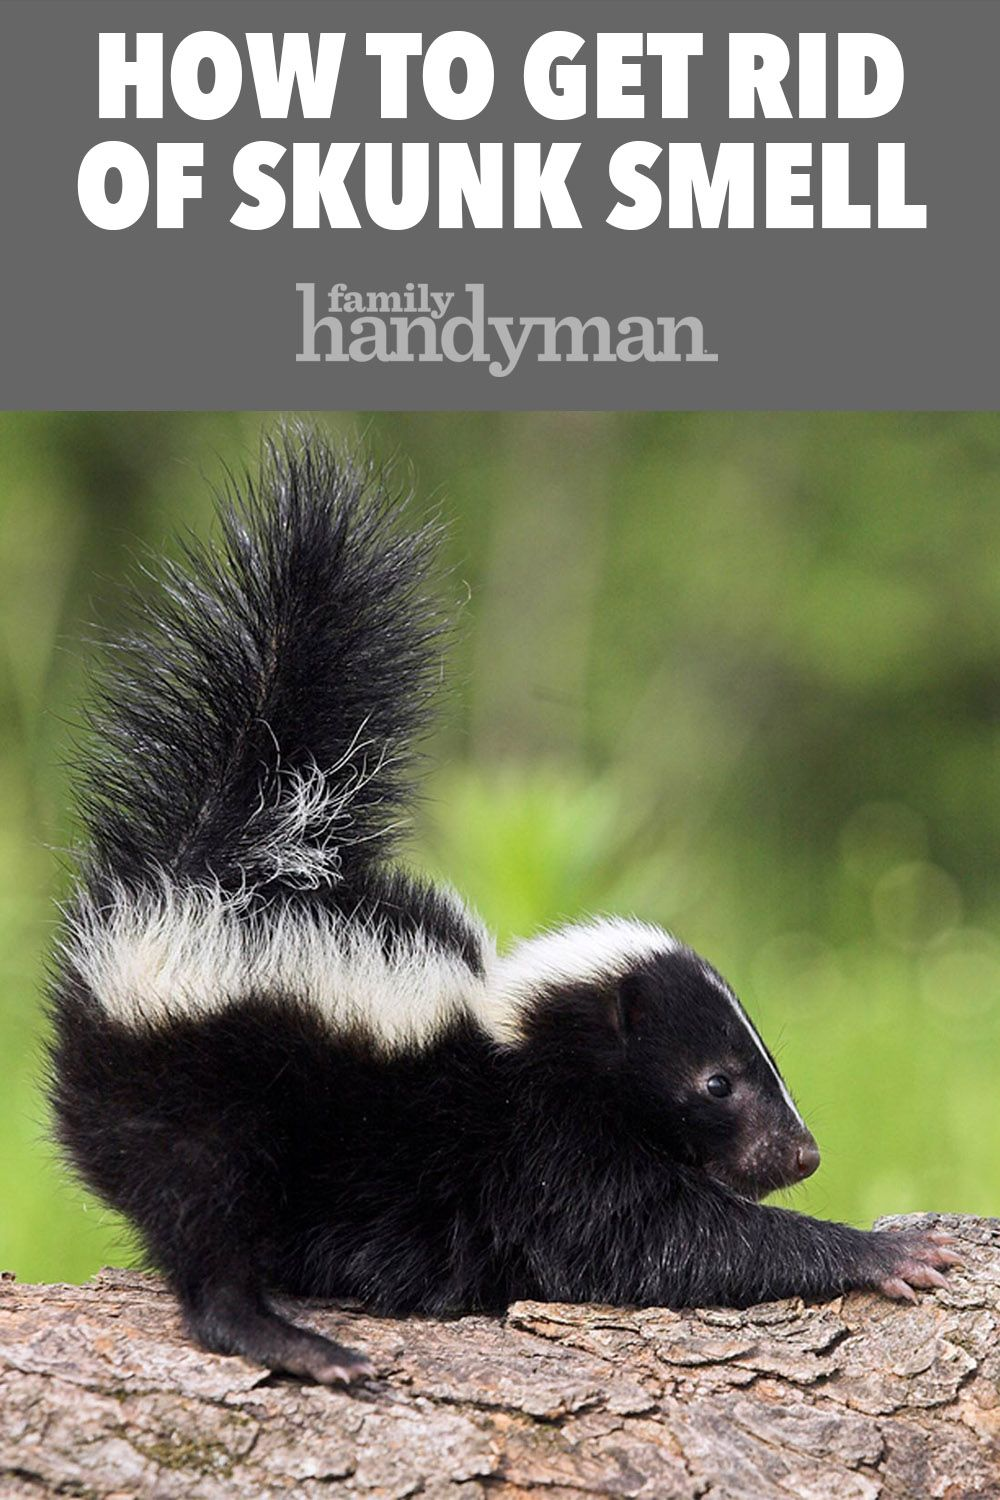 How To Get Rid Of Skunk Smell Skunk Smell Getting Rid Of Skunks Skunk Smell In House